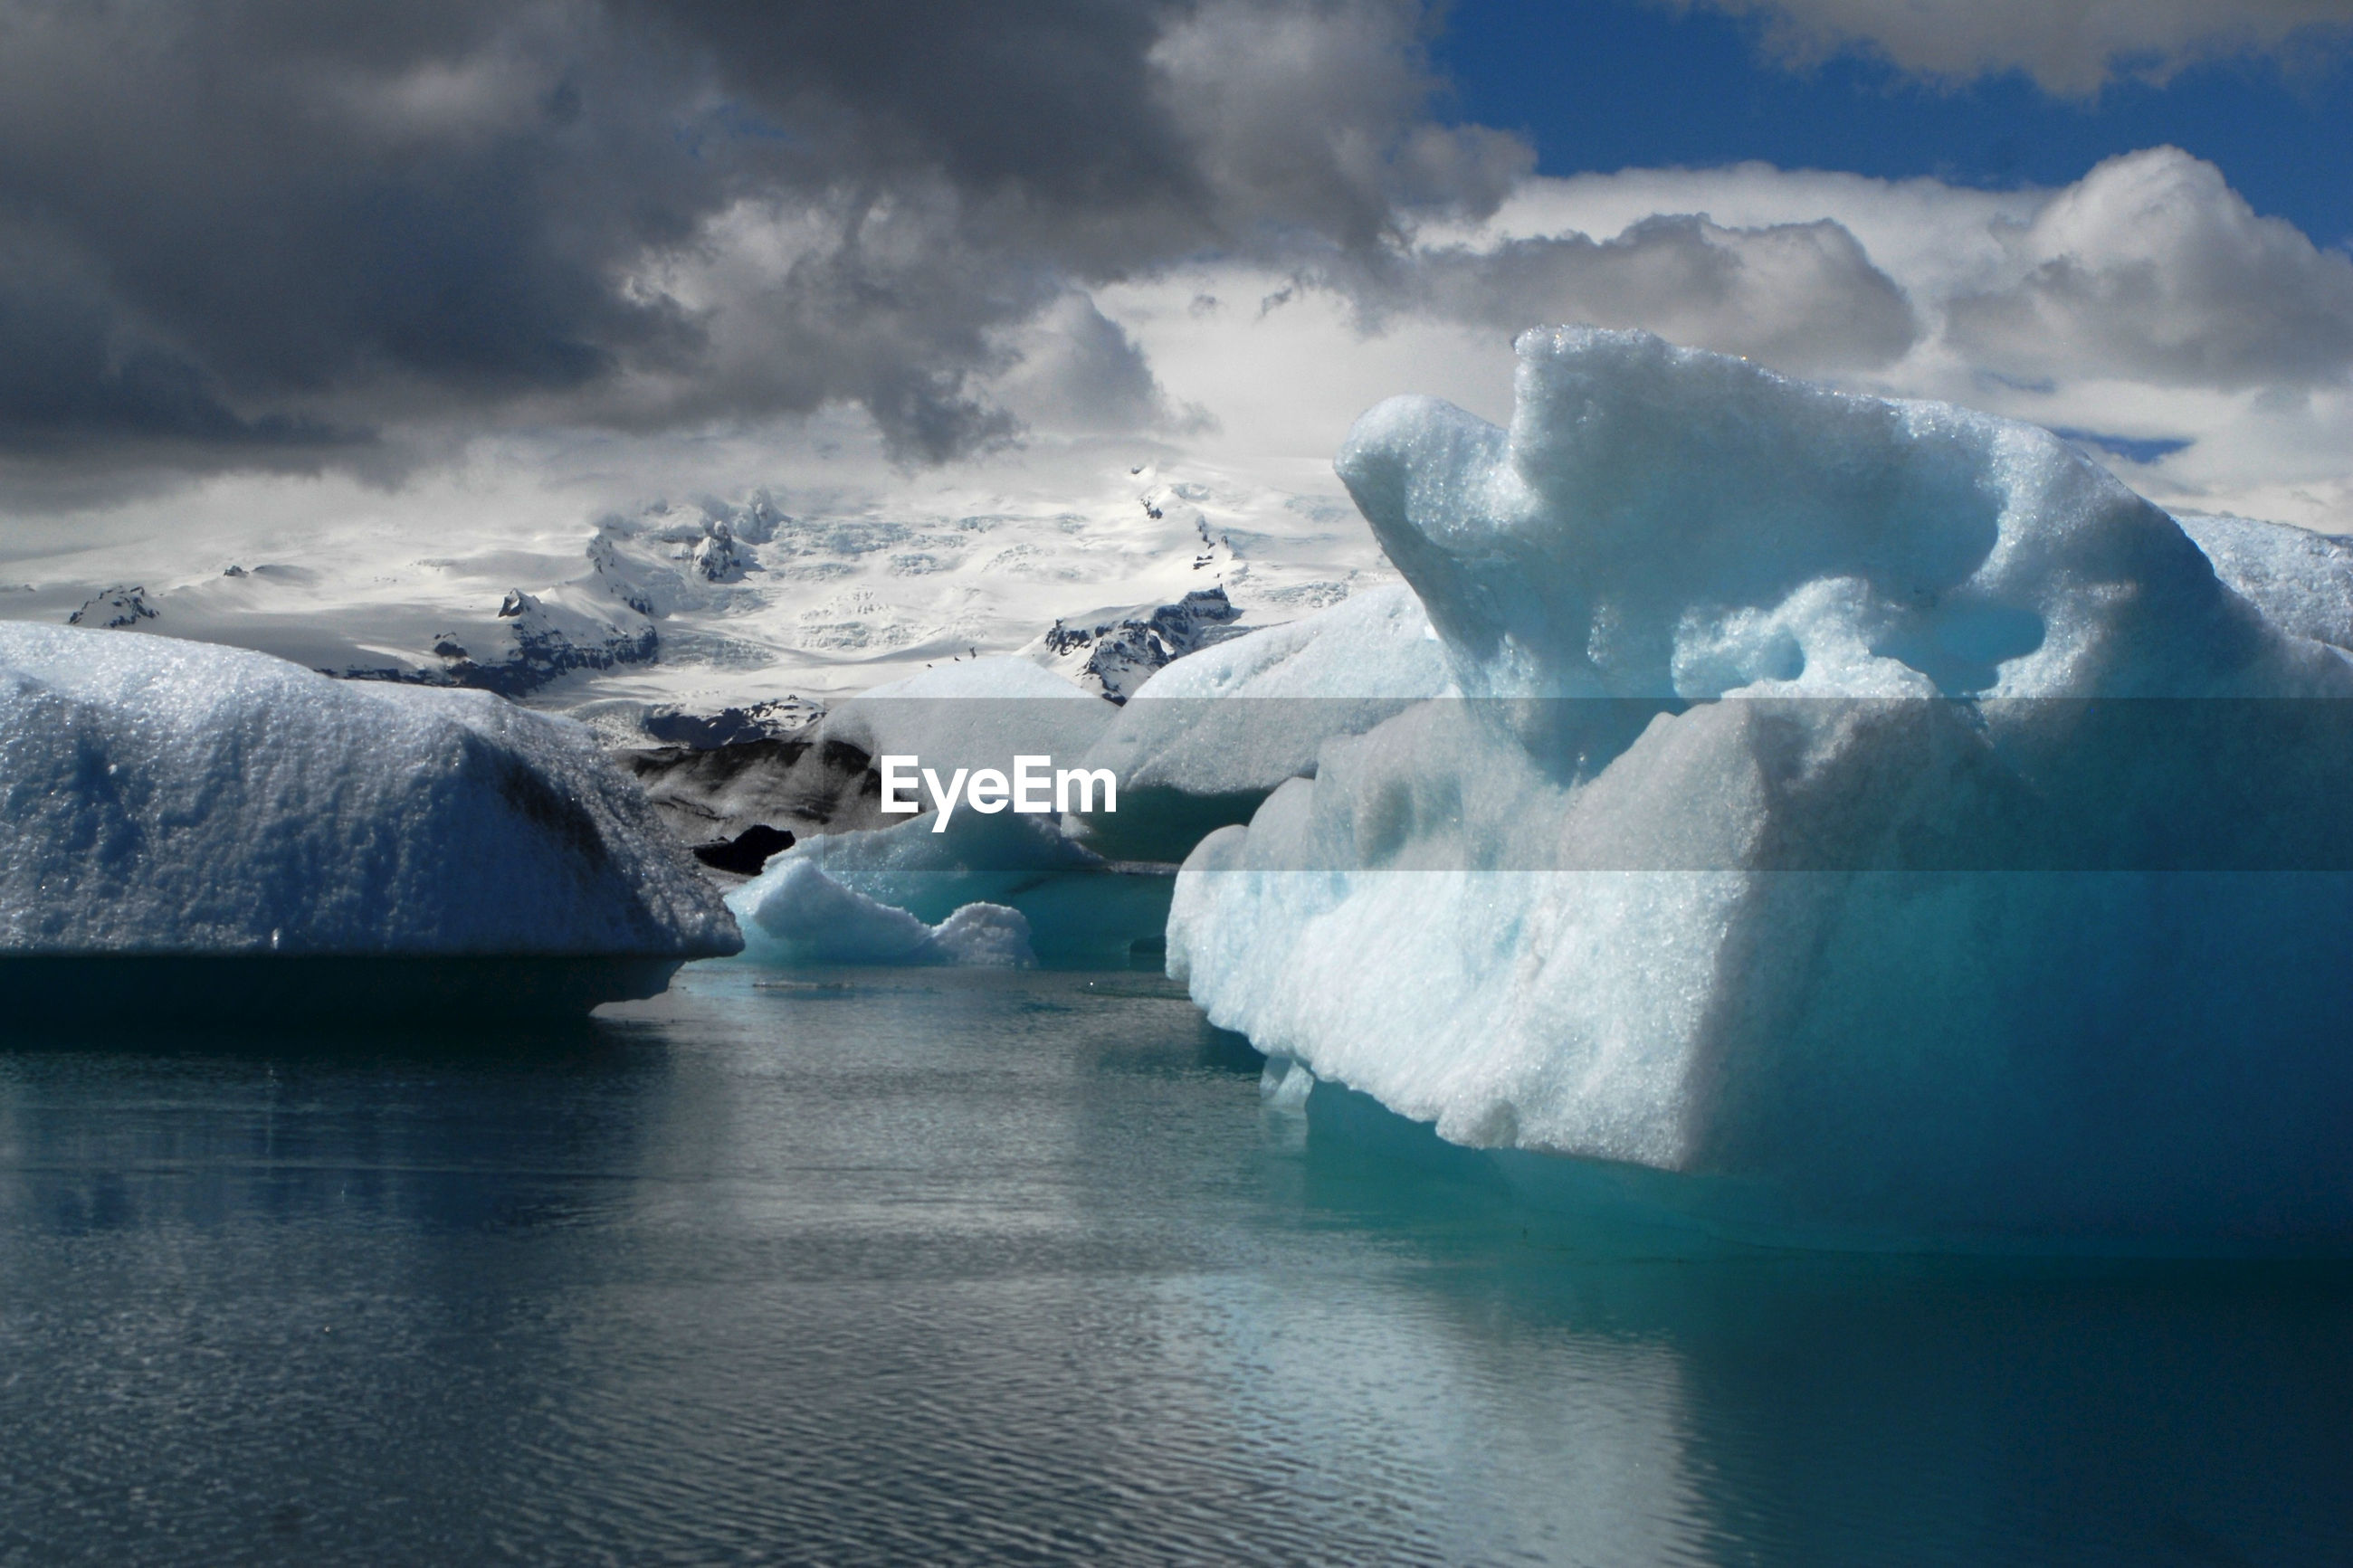 Scenic view of glaciers in lake against cloudy sky during winter